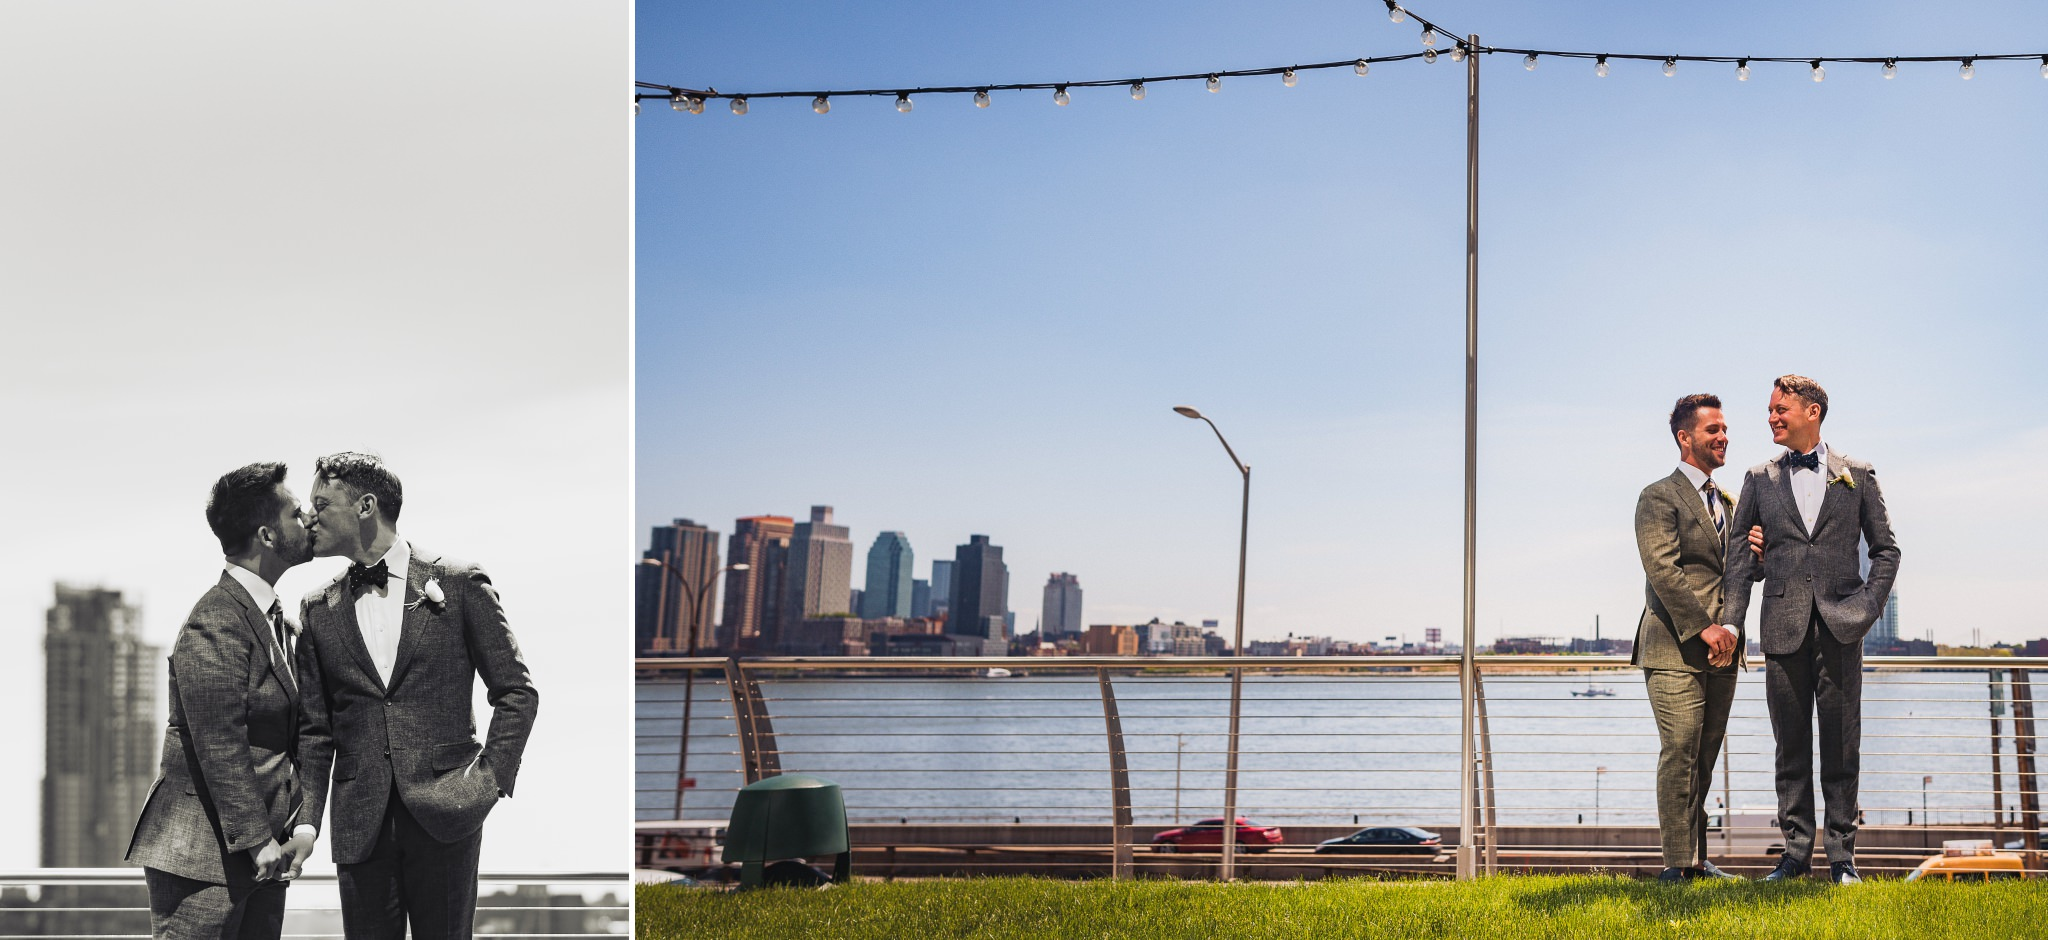 Some more formal portraits from Brian and Scott's New York wedding at Riverpark. We had such a beautiful blue sky, I wanted to incorporate some of that negative space into the images as we were shooting.